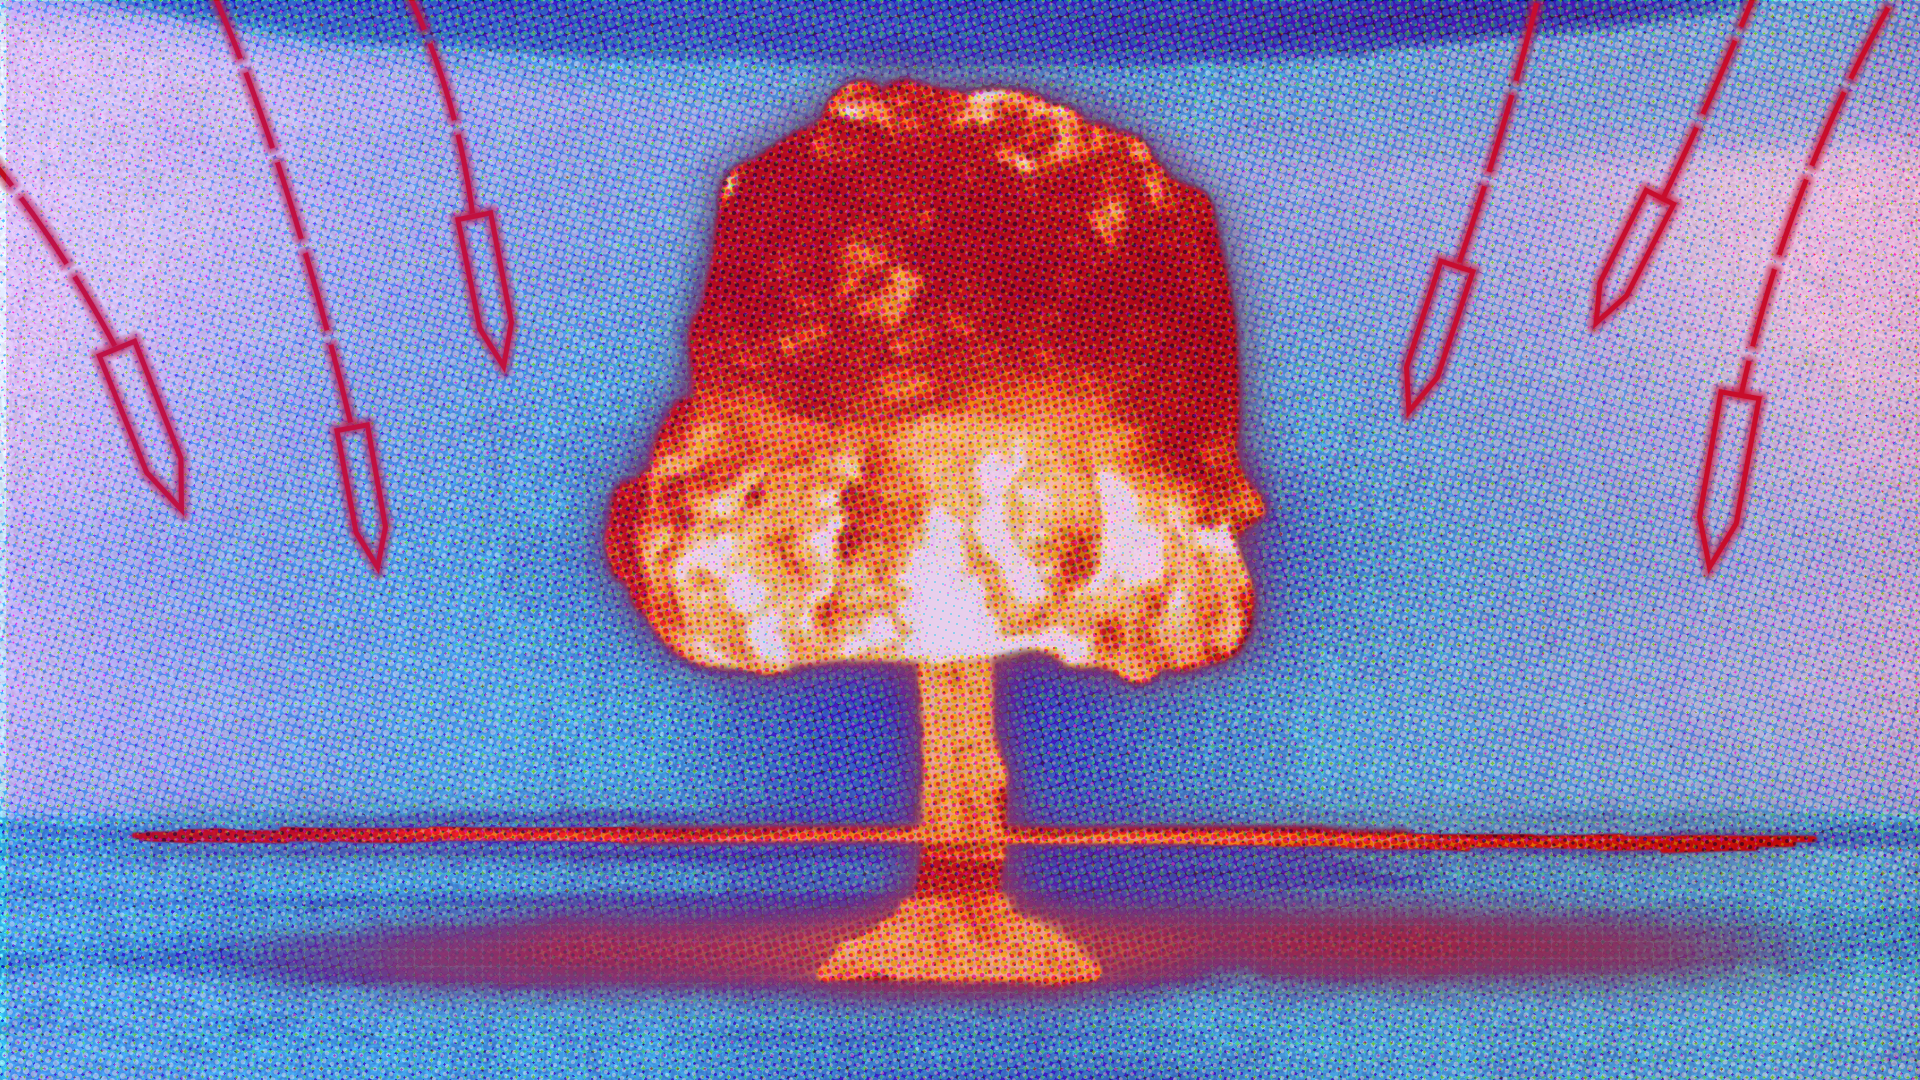 artwork of a nuclear bomb's mushroom cloud